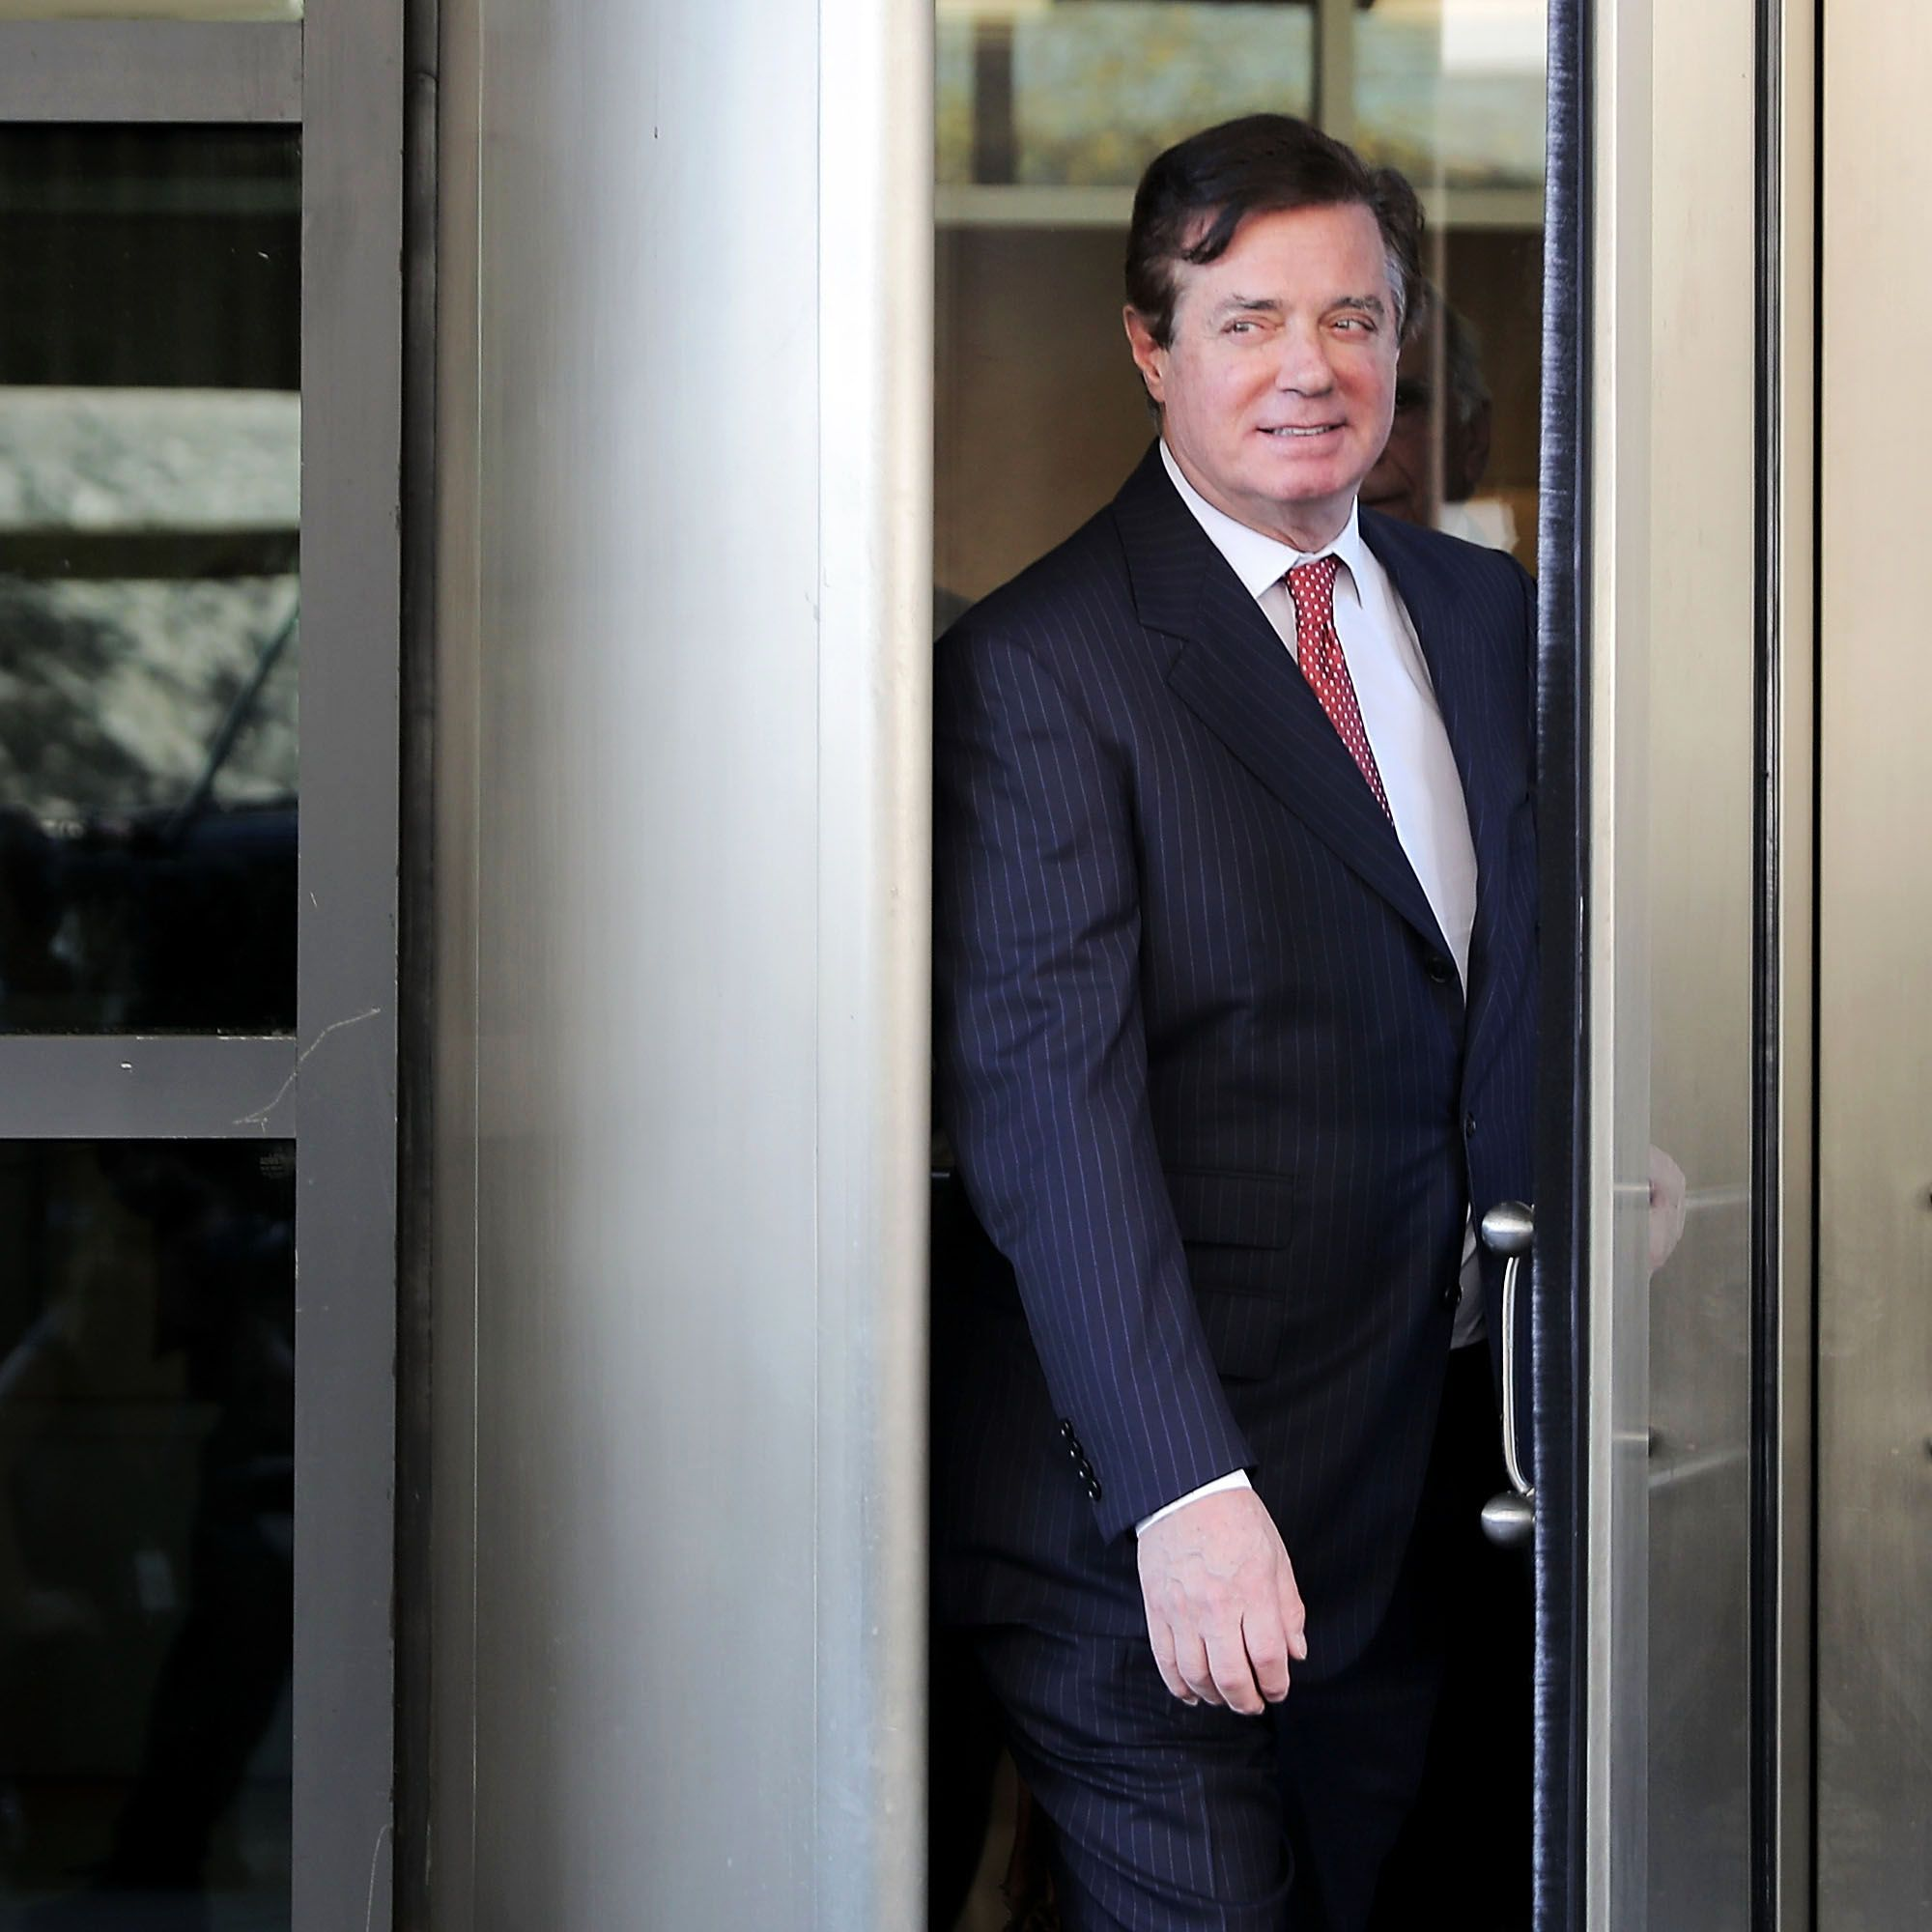 Former Trump campaign manager Paul Manafort leaves the Prettyman Federal Courthouse following a hearing November 2, 2017 in Washington, DC.